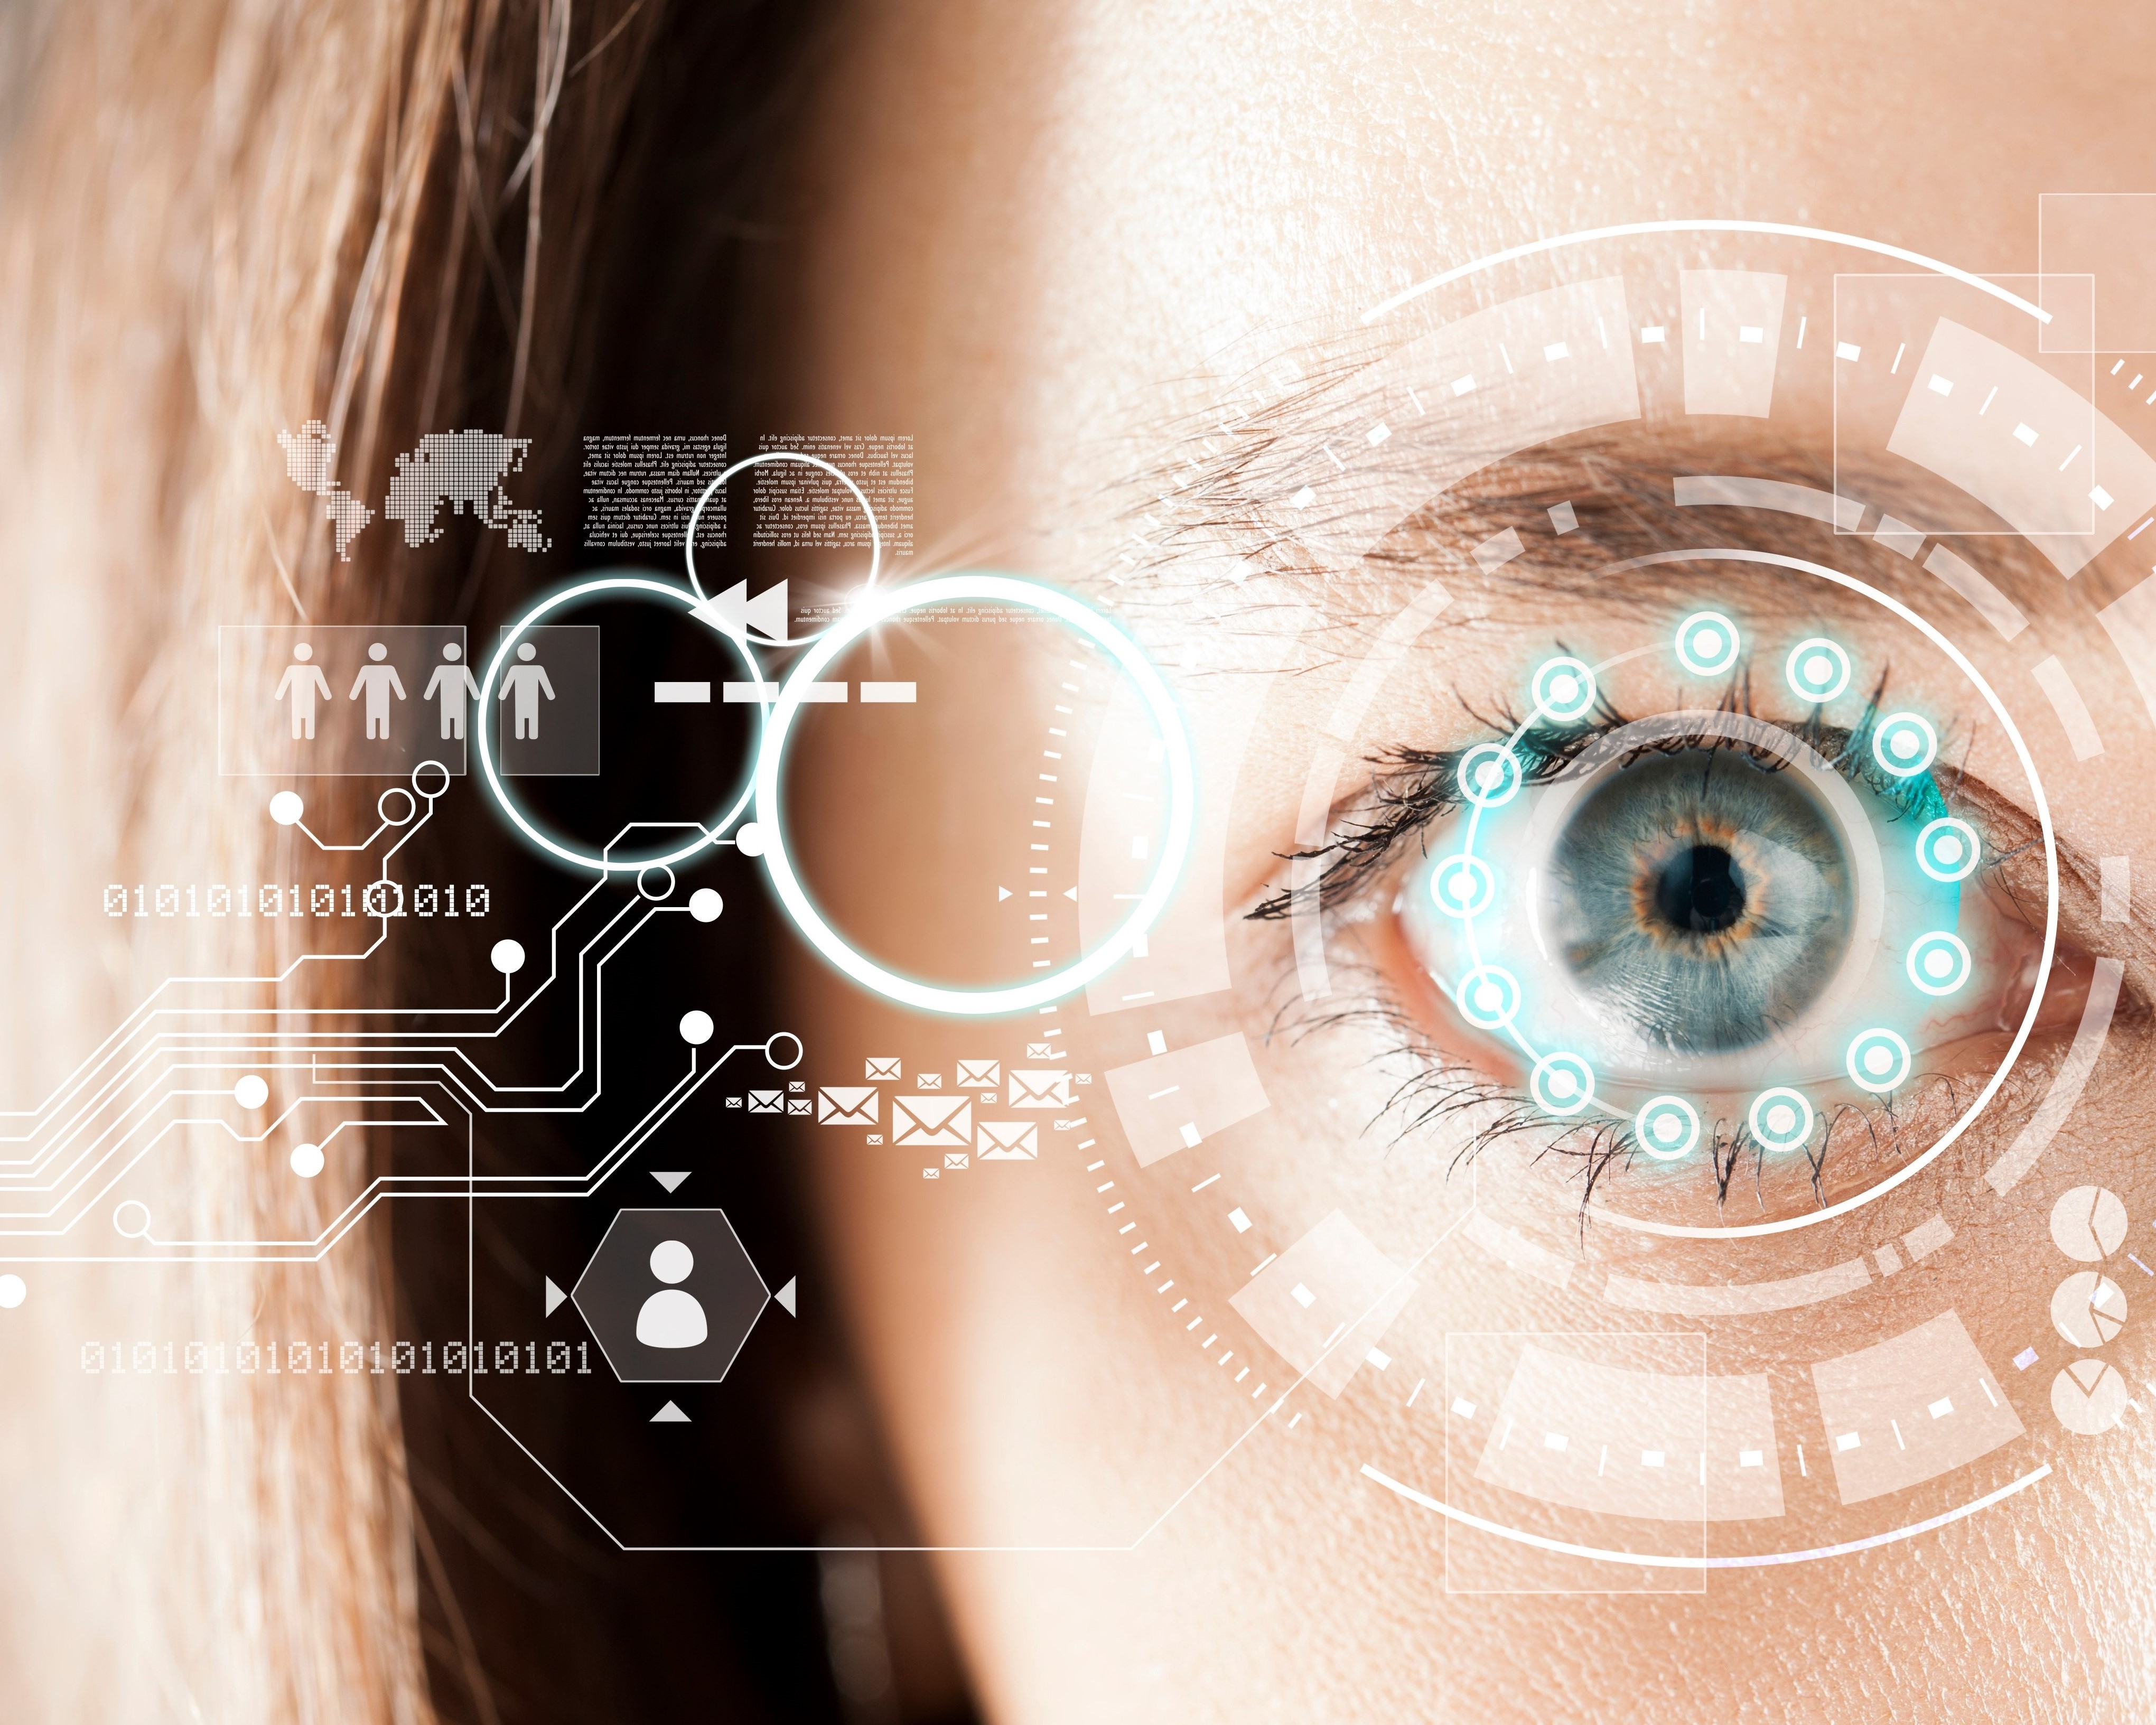 A project developing AI capabilities to improve optometry accuracy for patient diagnoses and referrals received funding in the latest CRC-P funding round. Image: Shutterstock